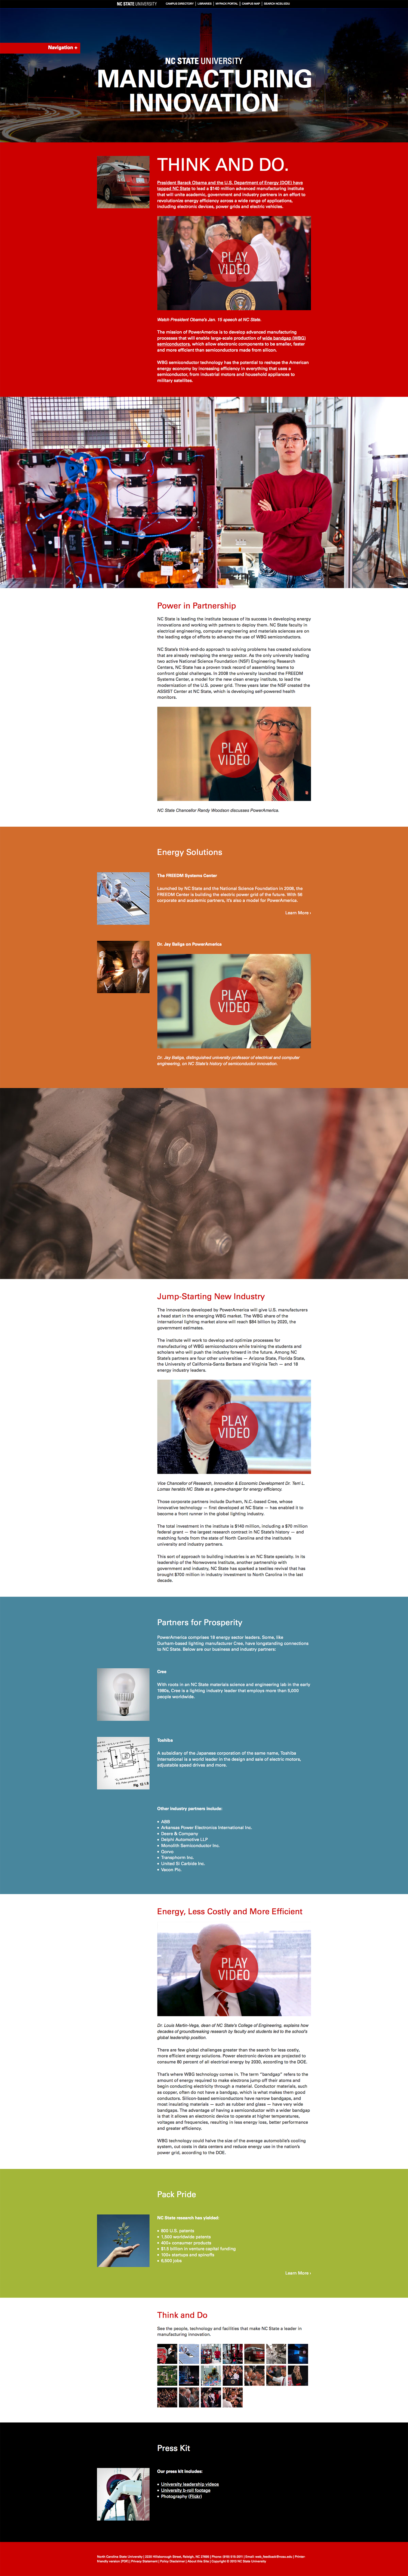 Manufacturing_Innovation_NC_State_University_-_2015-03-01_05.57.33.png